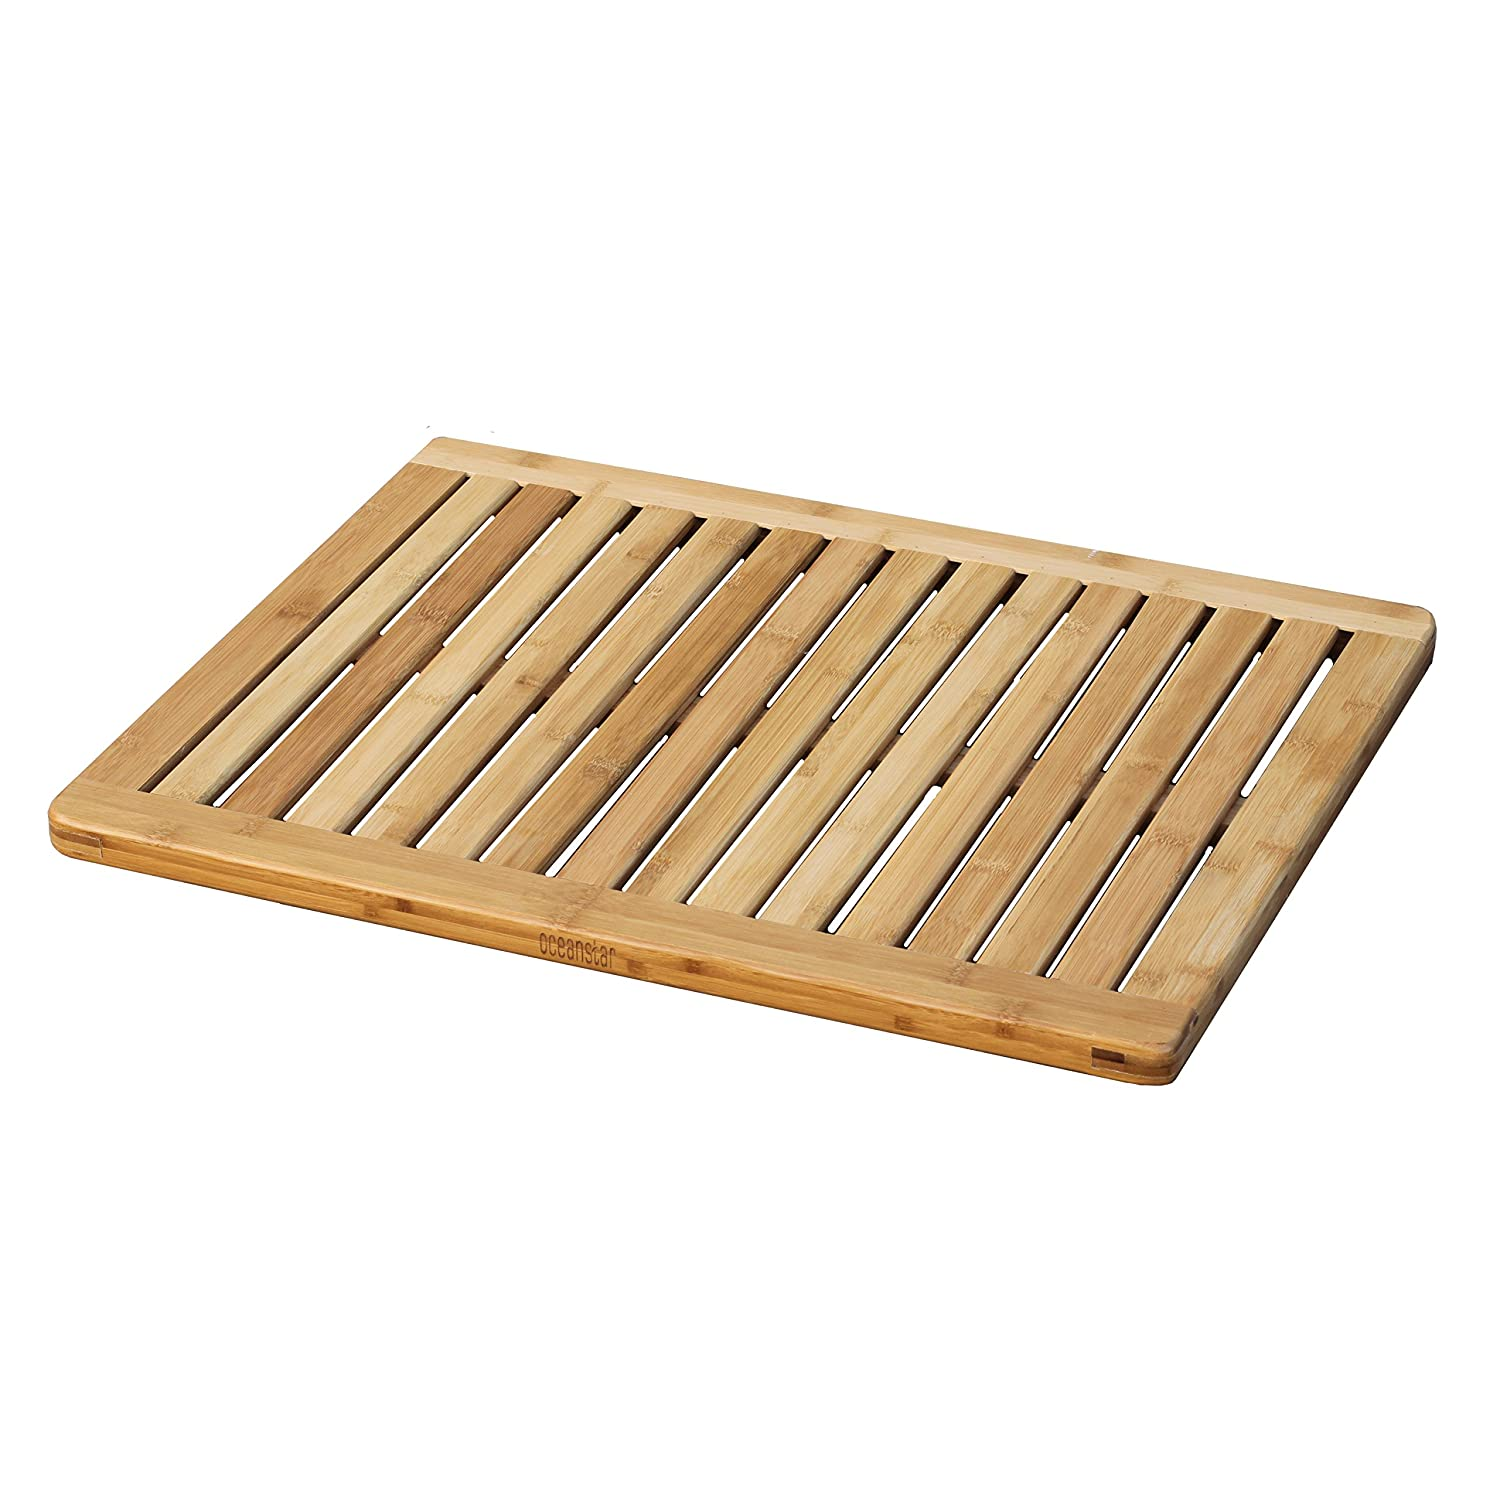 bamboo plan mat tags floor floors exterior tile patio ideas paving wood makeovers